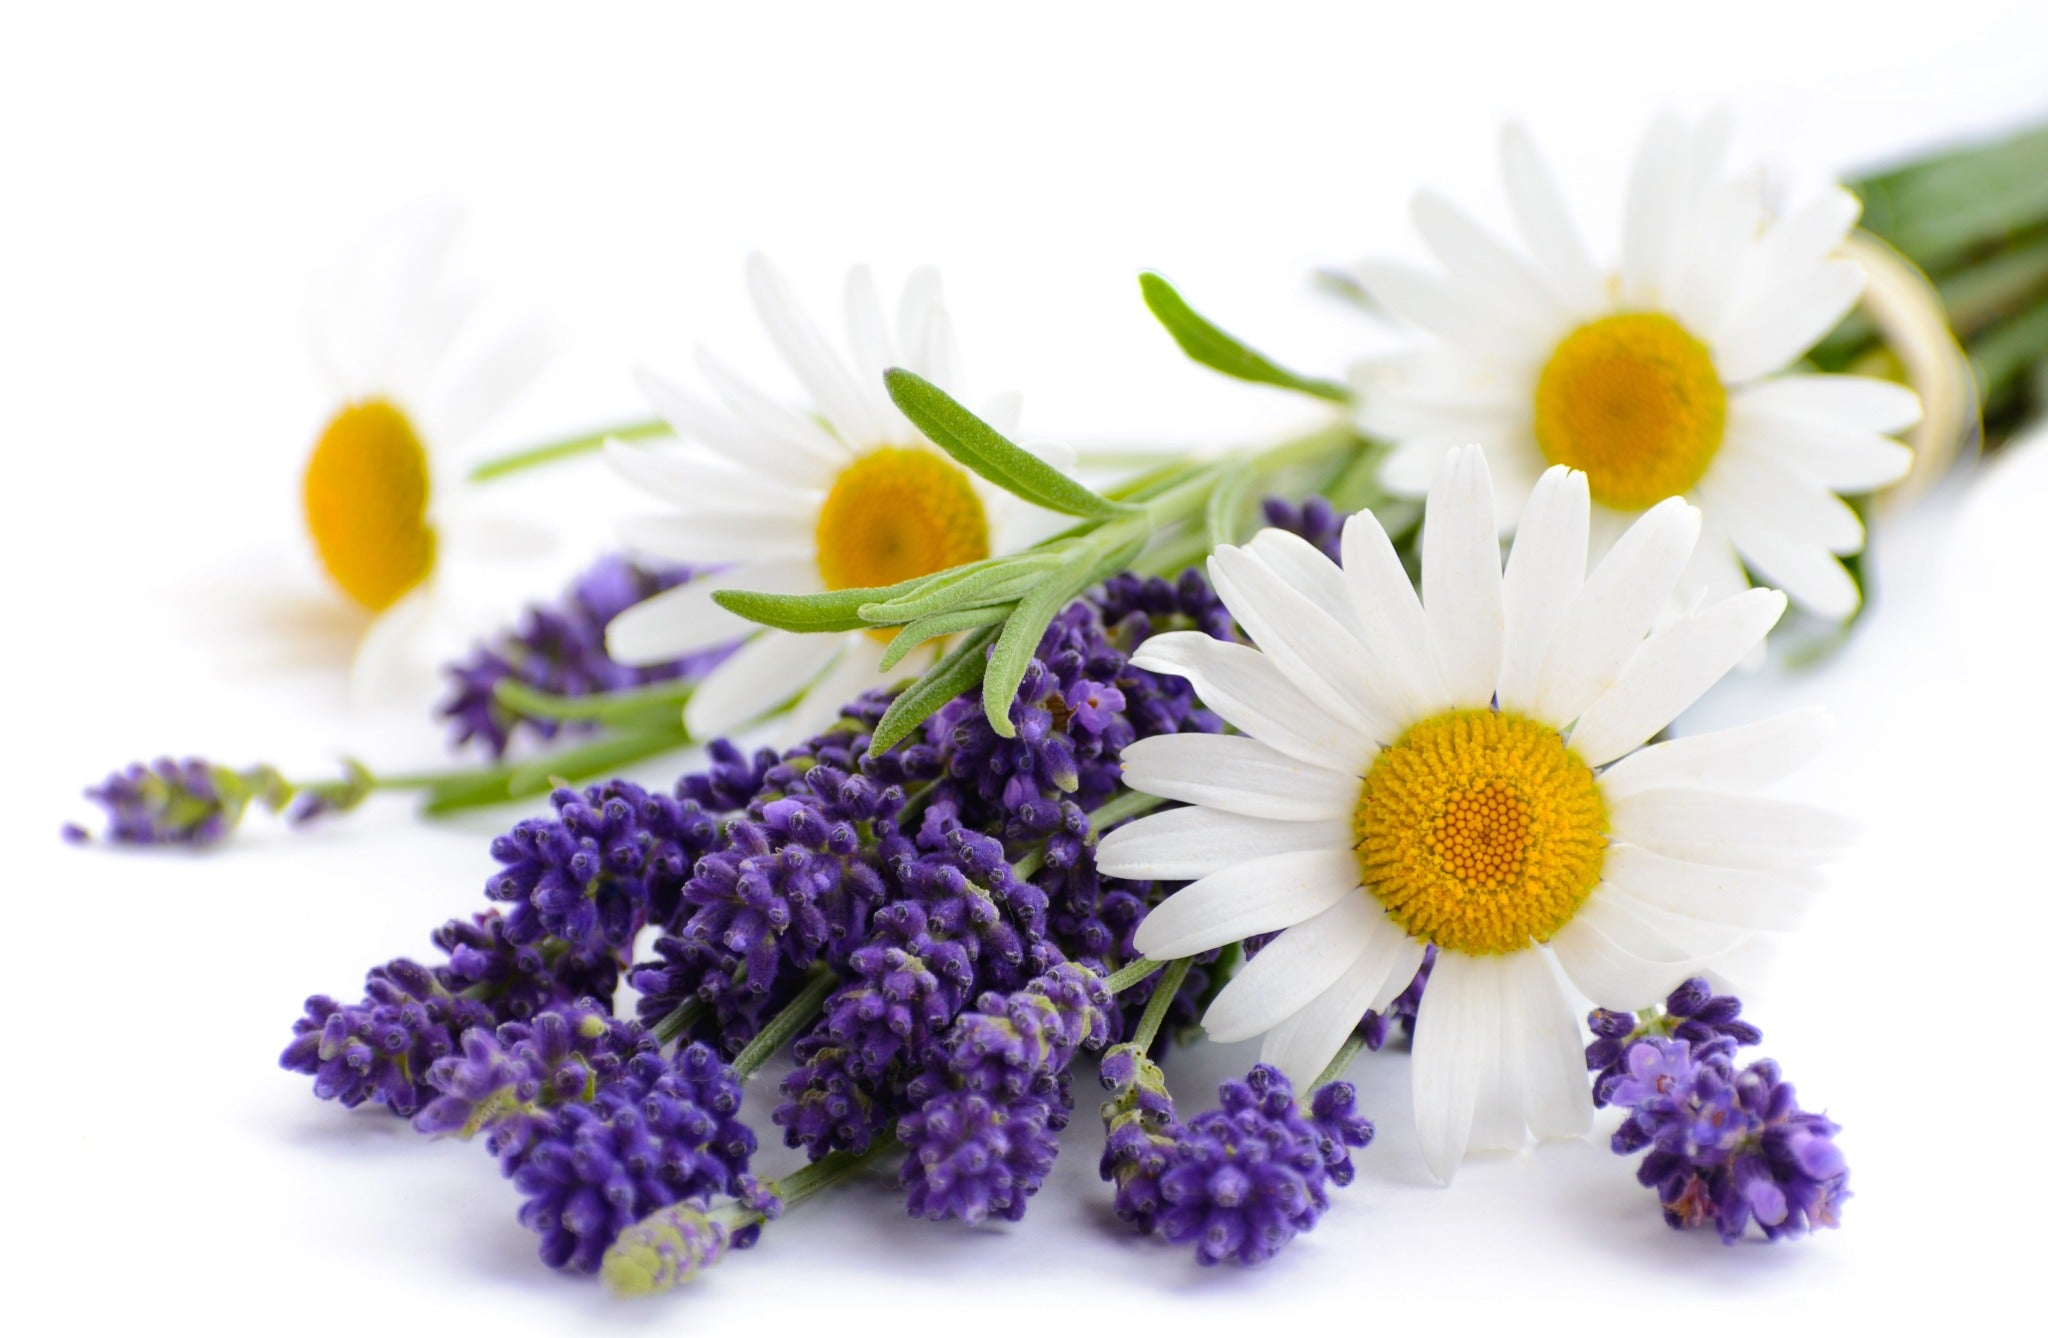 Lavender and chamomile flowers on white background